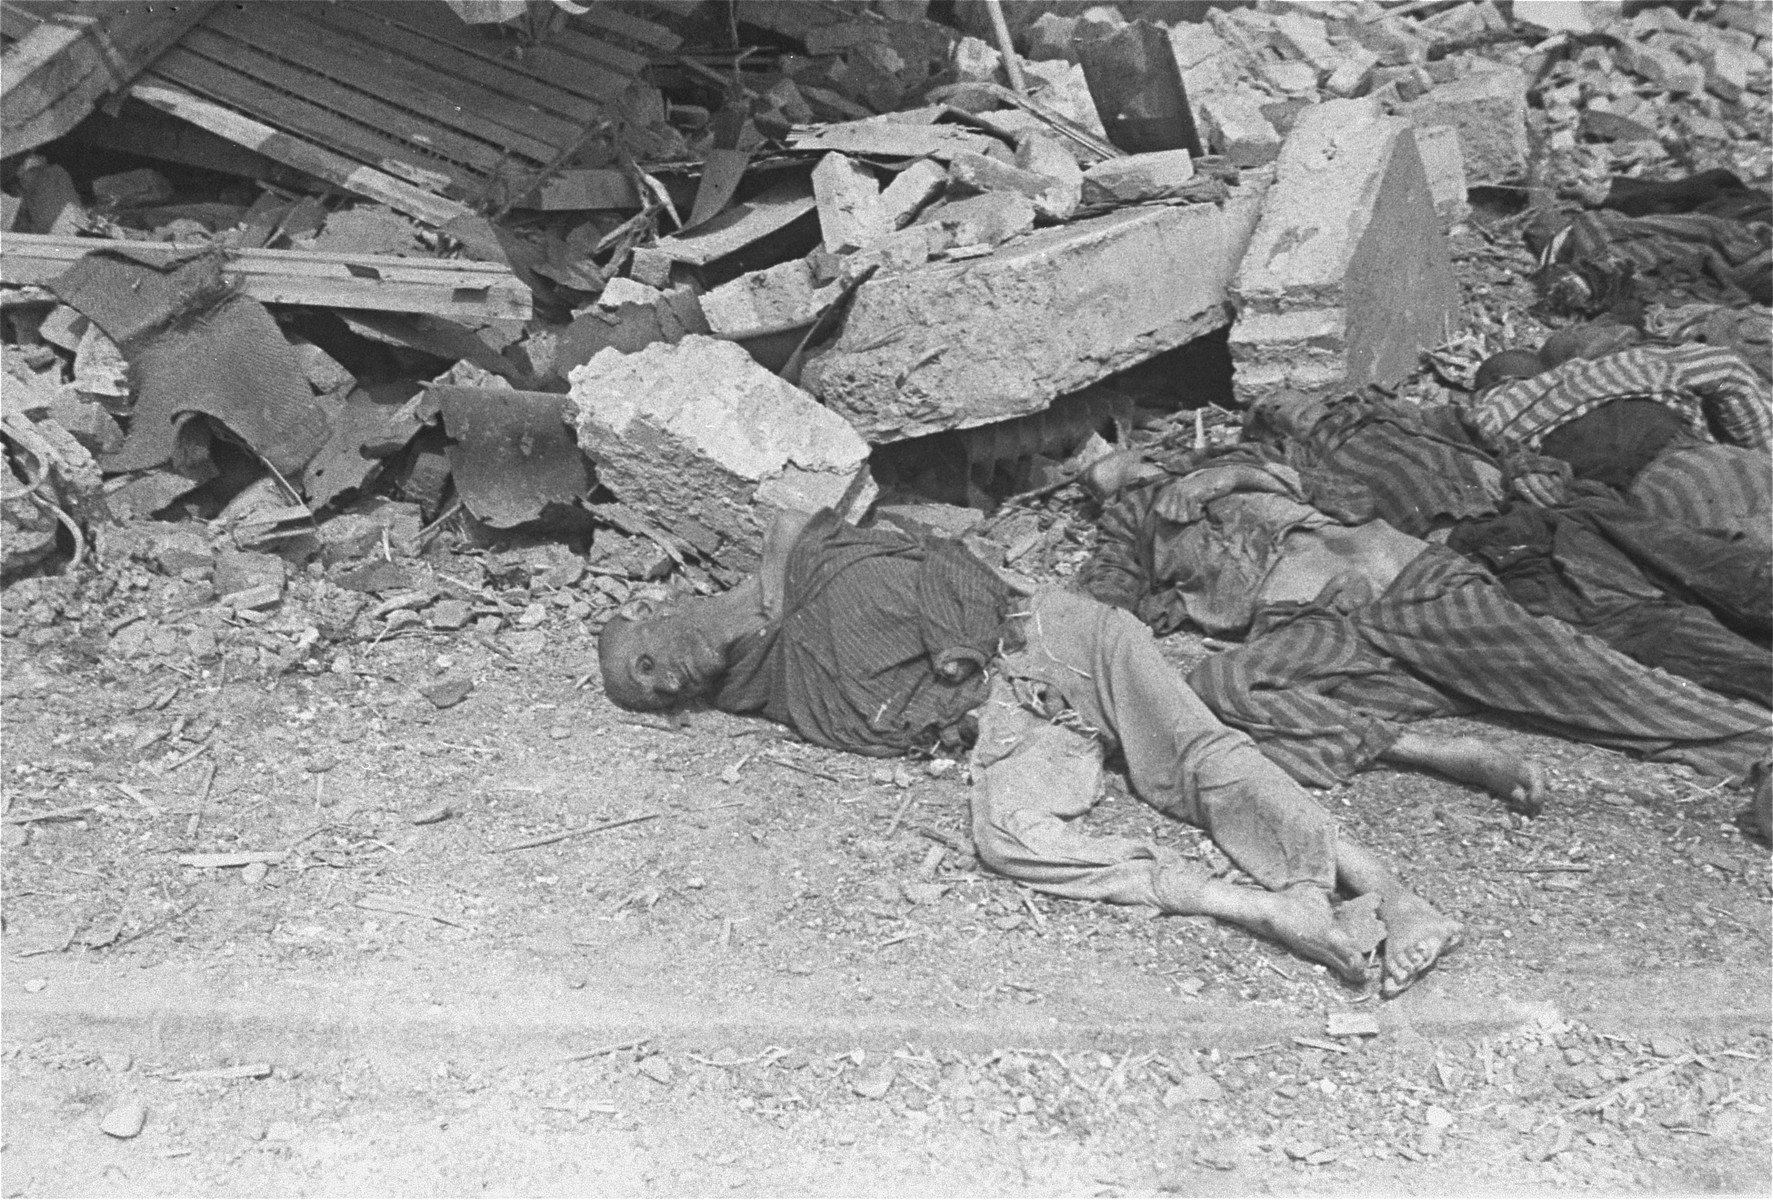 Corpses lie on the ground in the newly liberated Nordhausen concentration camp.